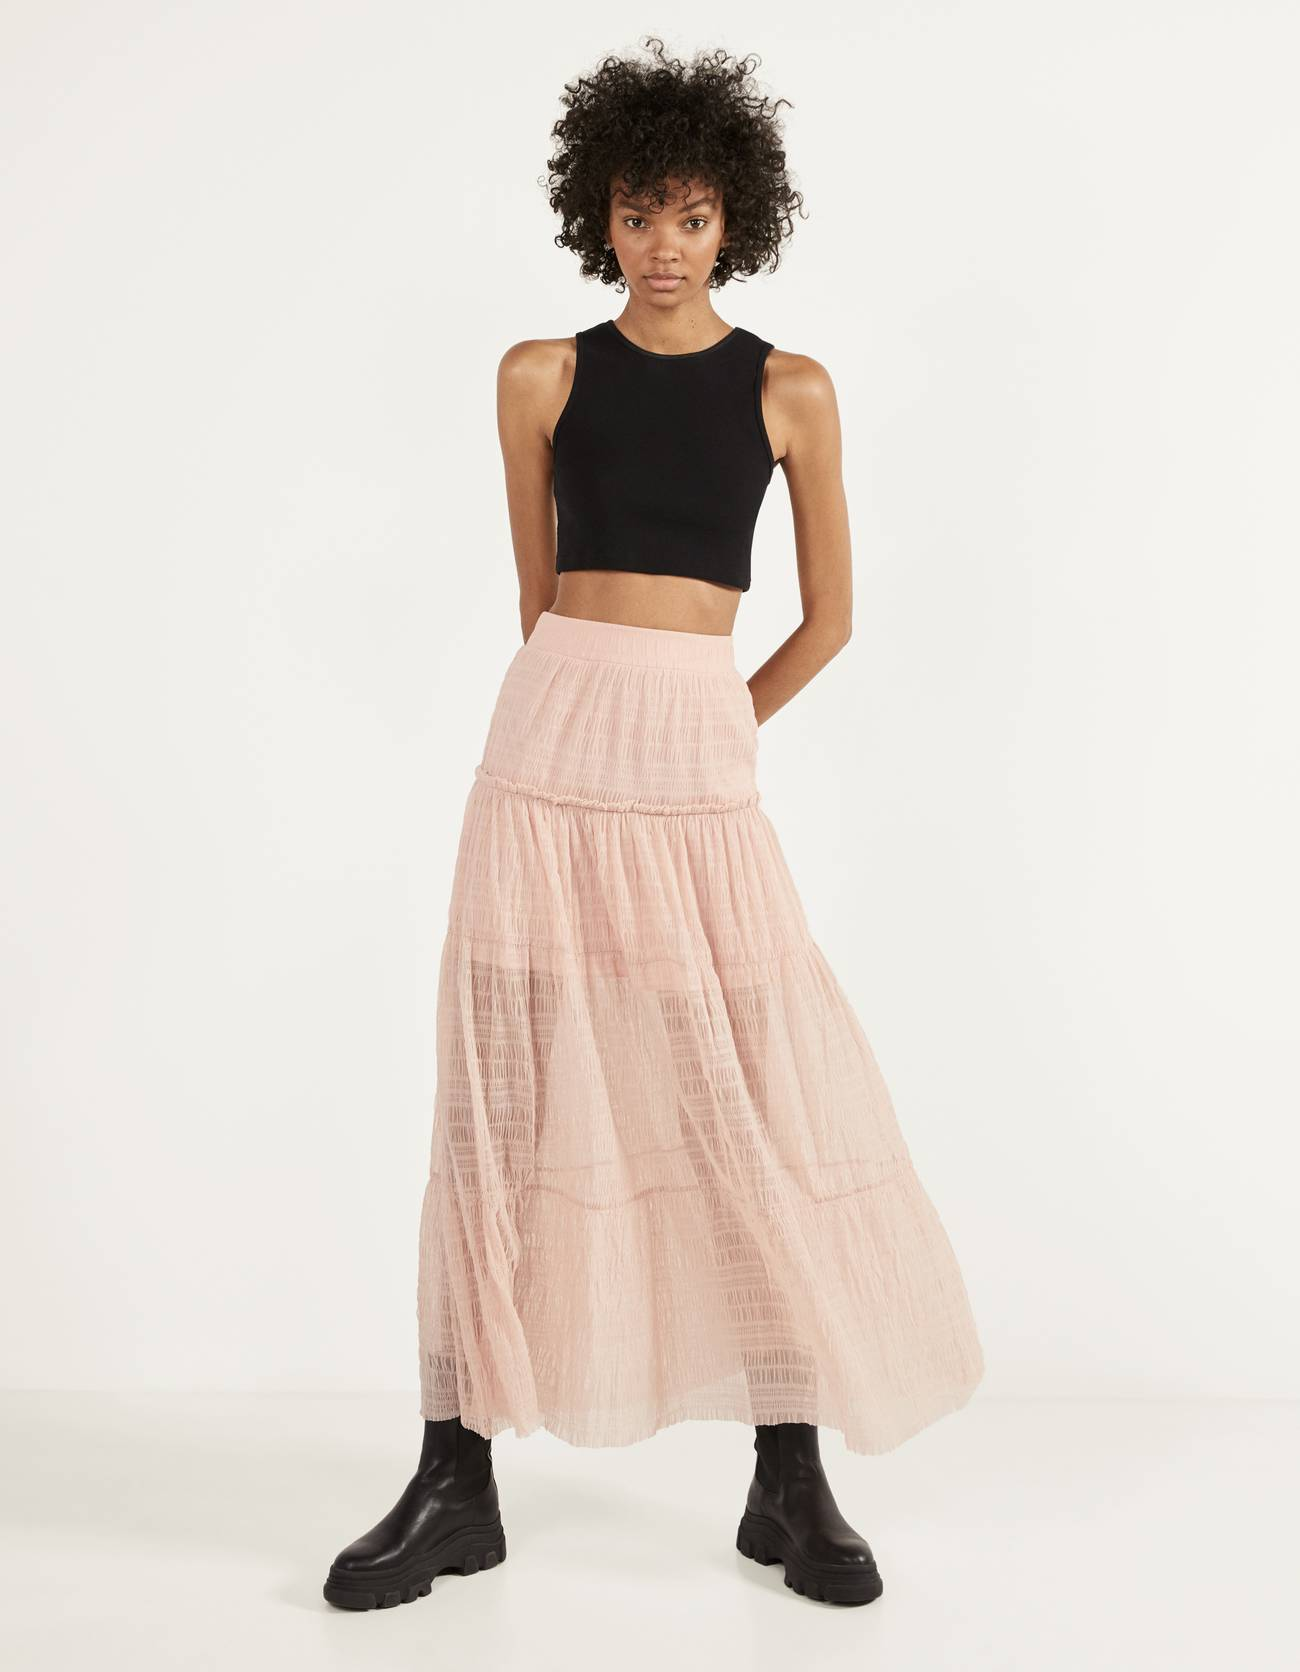 Tulle maxi skirt with shirred elastic